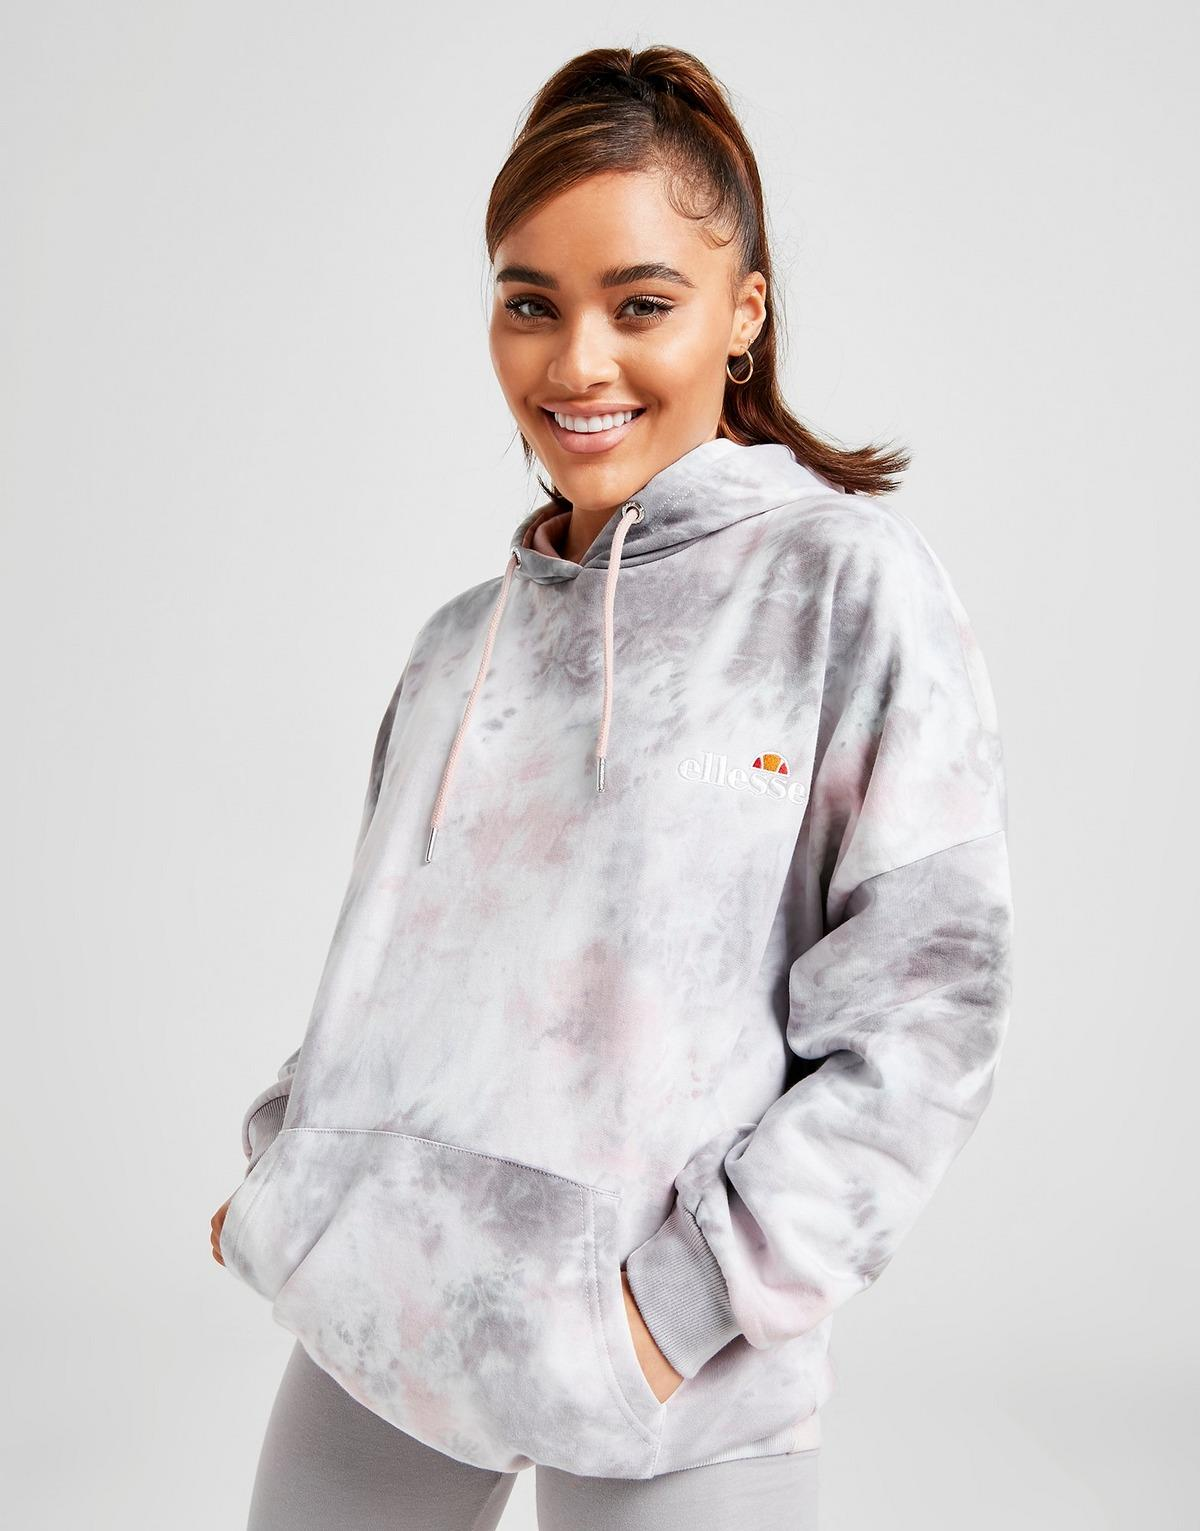 sudadera-tie-dye-jd-sports